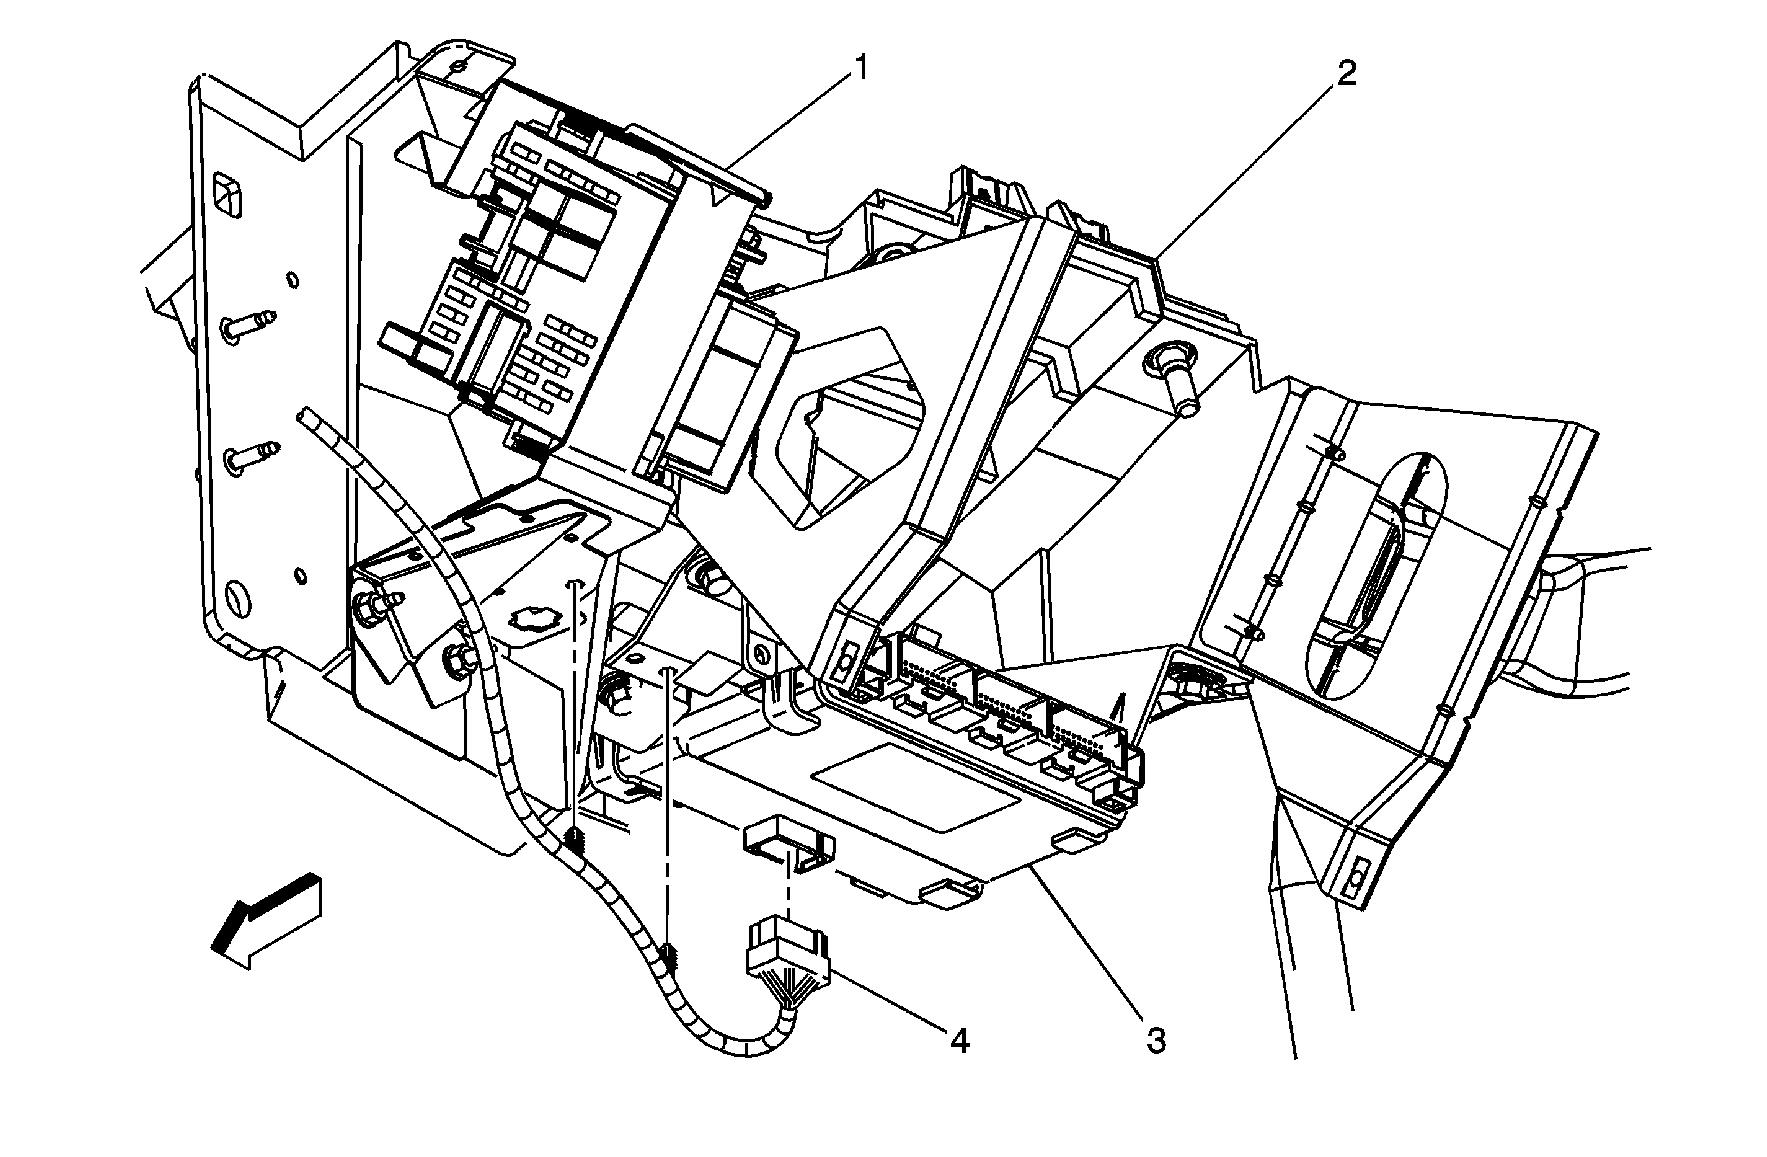 Chevy Silverado Drawing At Free For Personal Use 1999 Light Wiring Diagram 31 About Remodel 2003 1767x1157 Bcm Basics 101 03 06